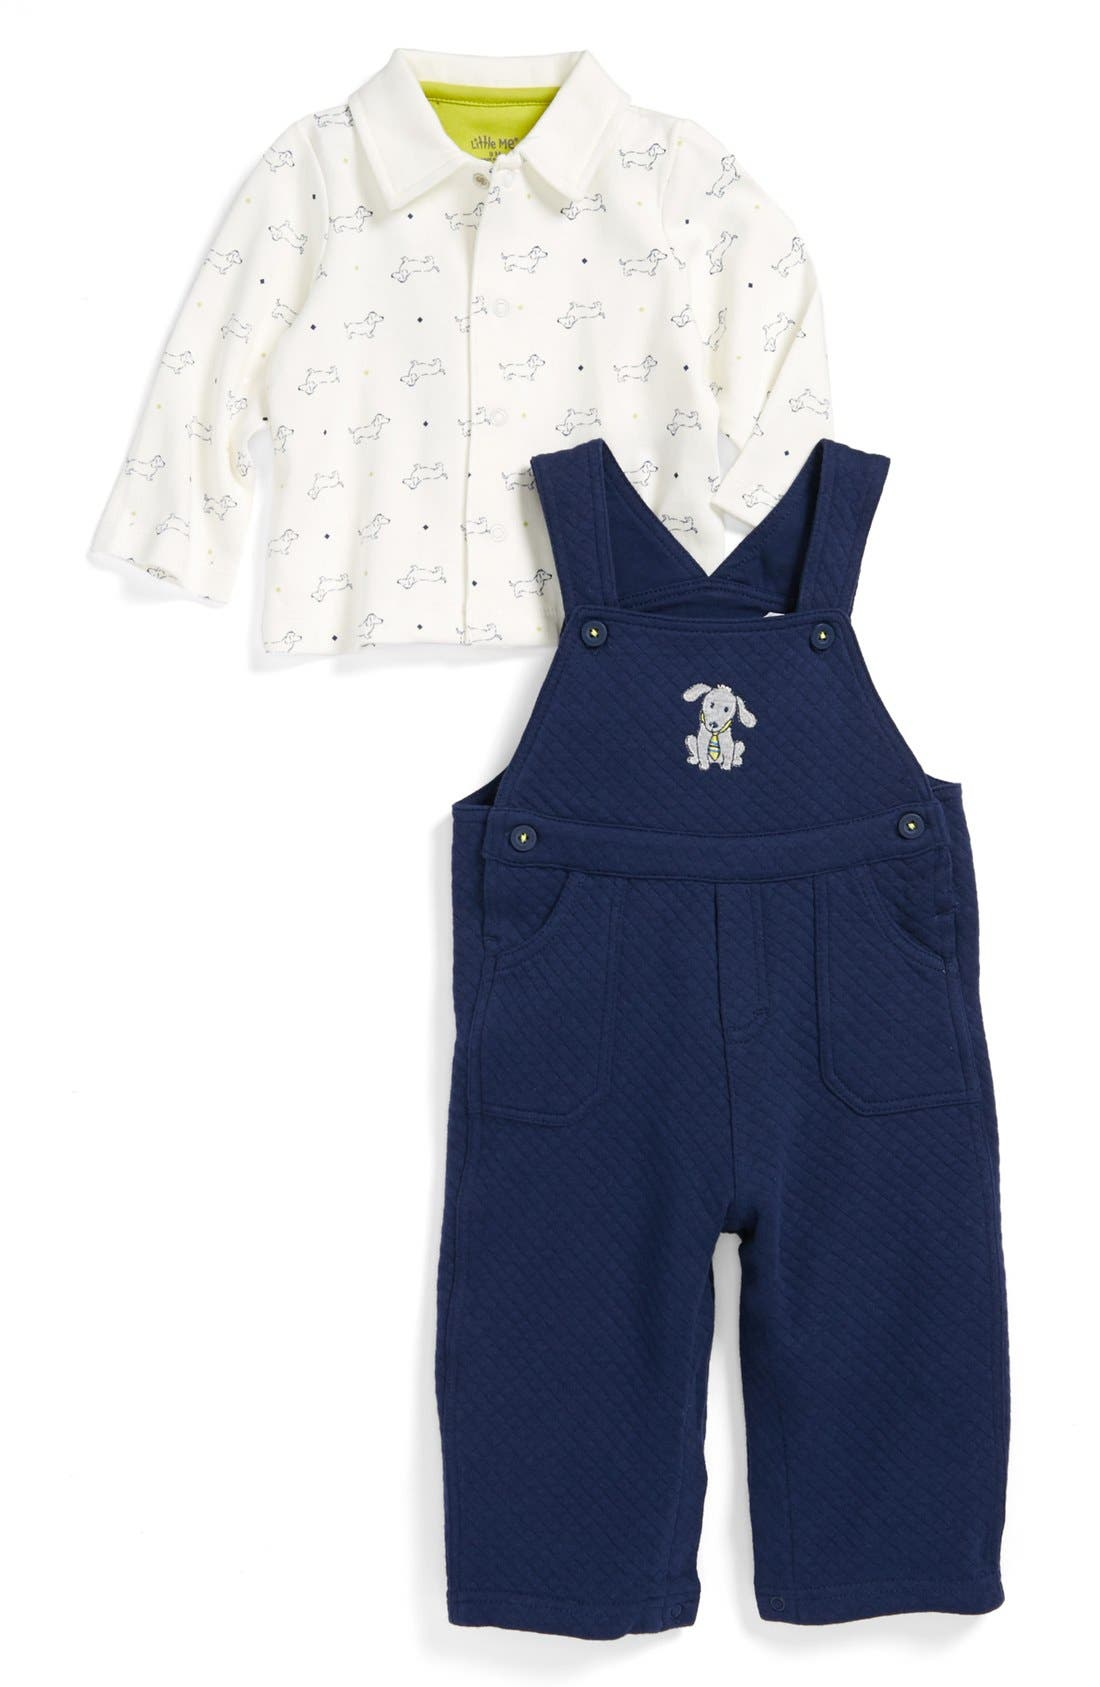 Main Image - Little Me 'Dashing Pups' Shirt & Overalls (Baby Boys)